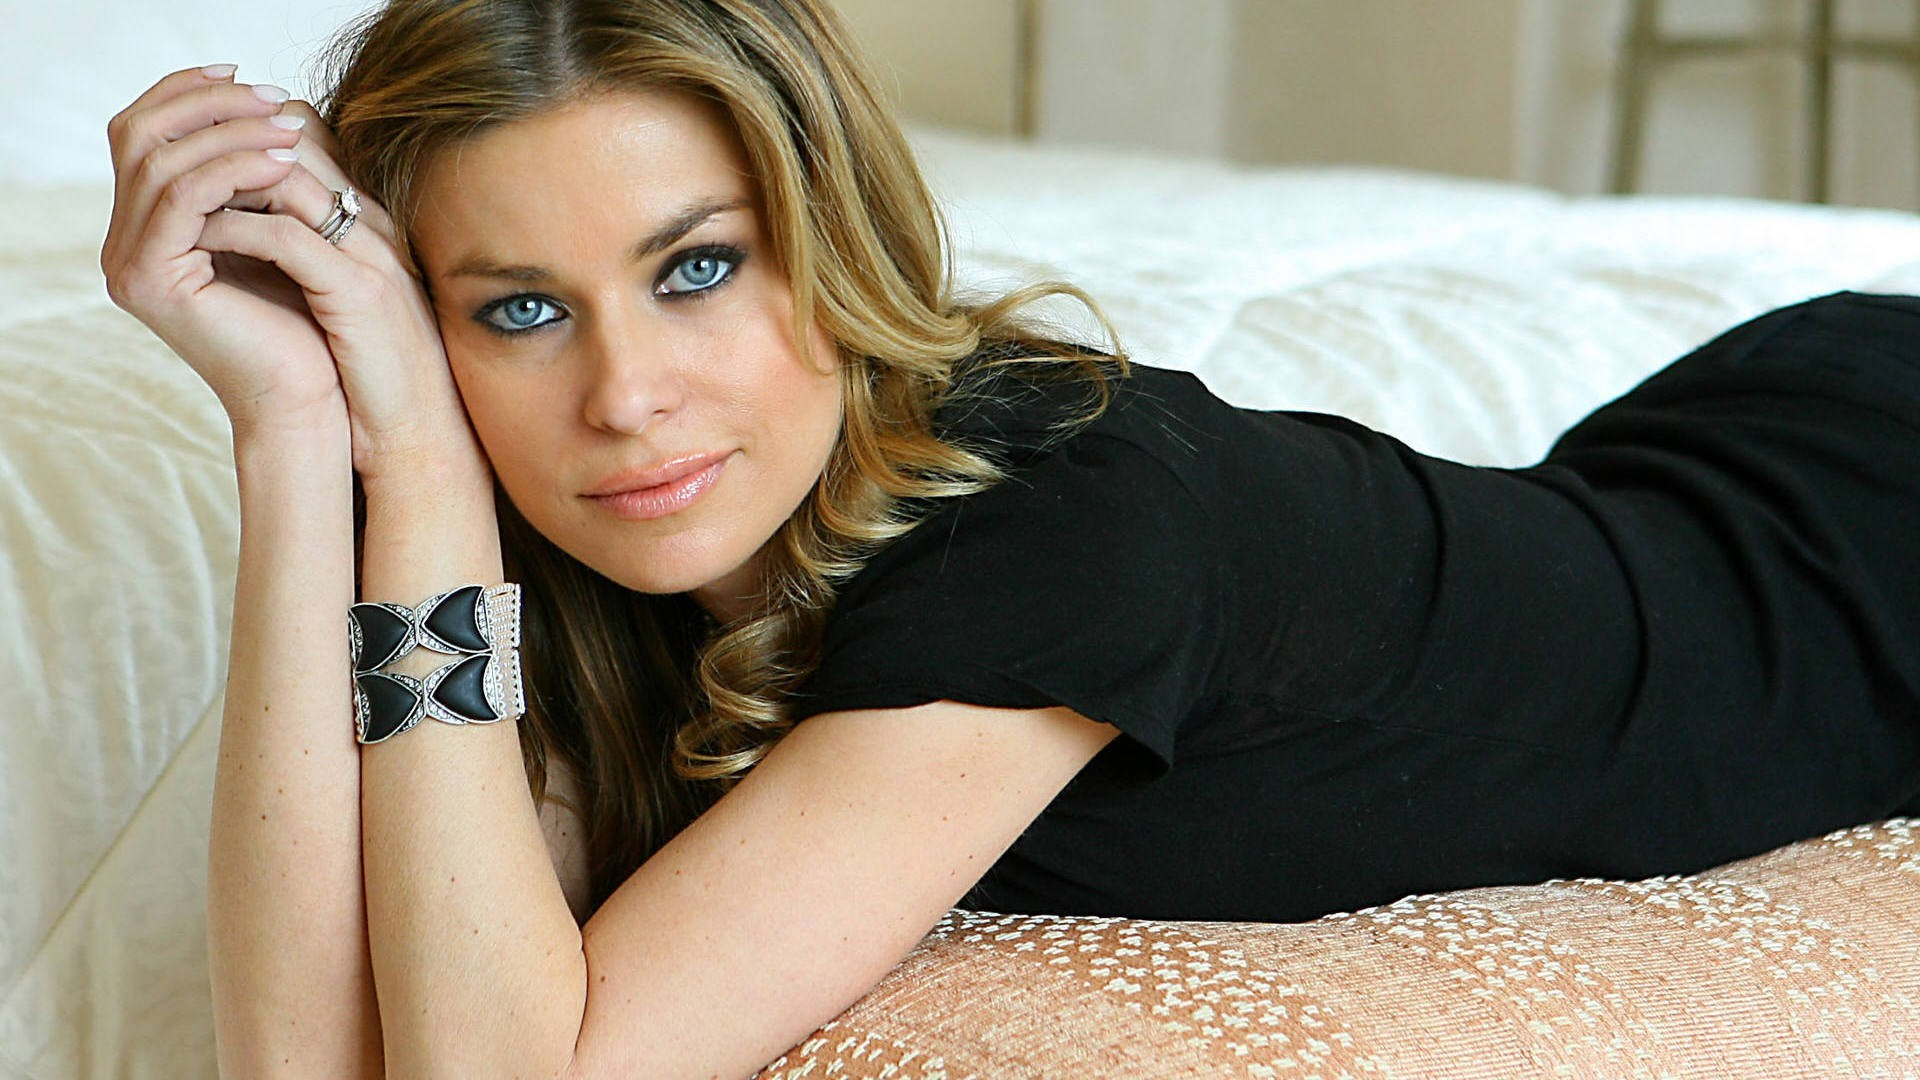 Carmen Electra Wallpaper 2  Carmen Electra Wallpaper 2